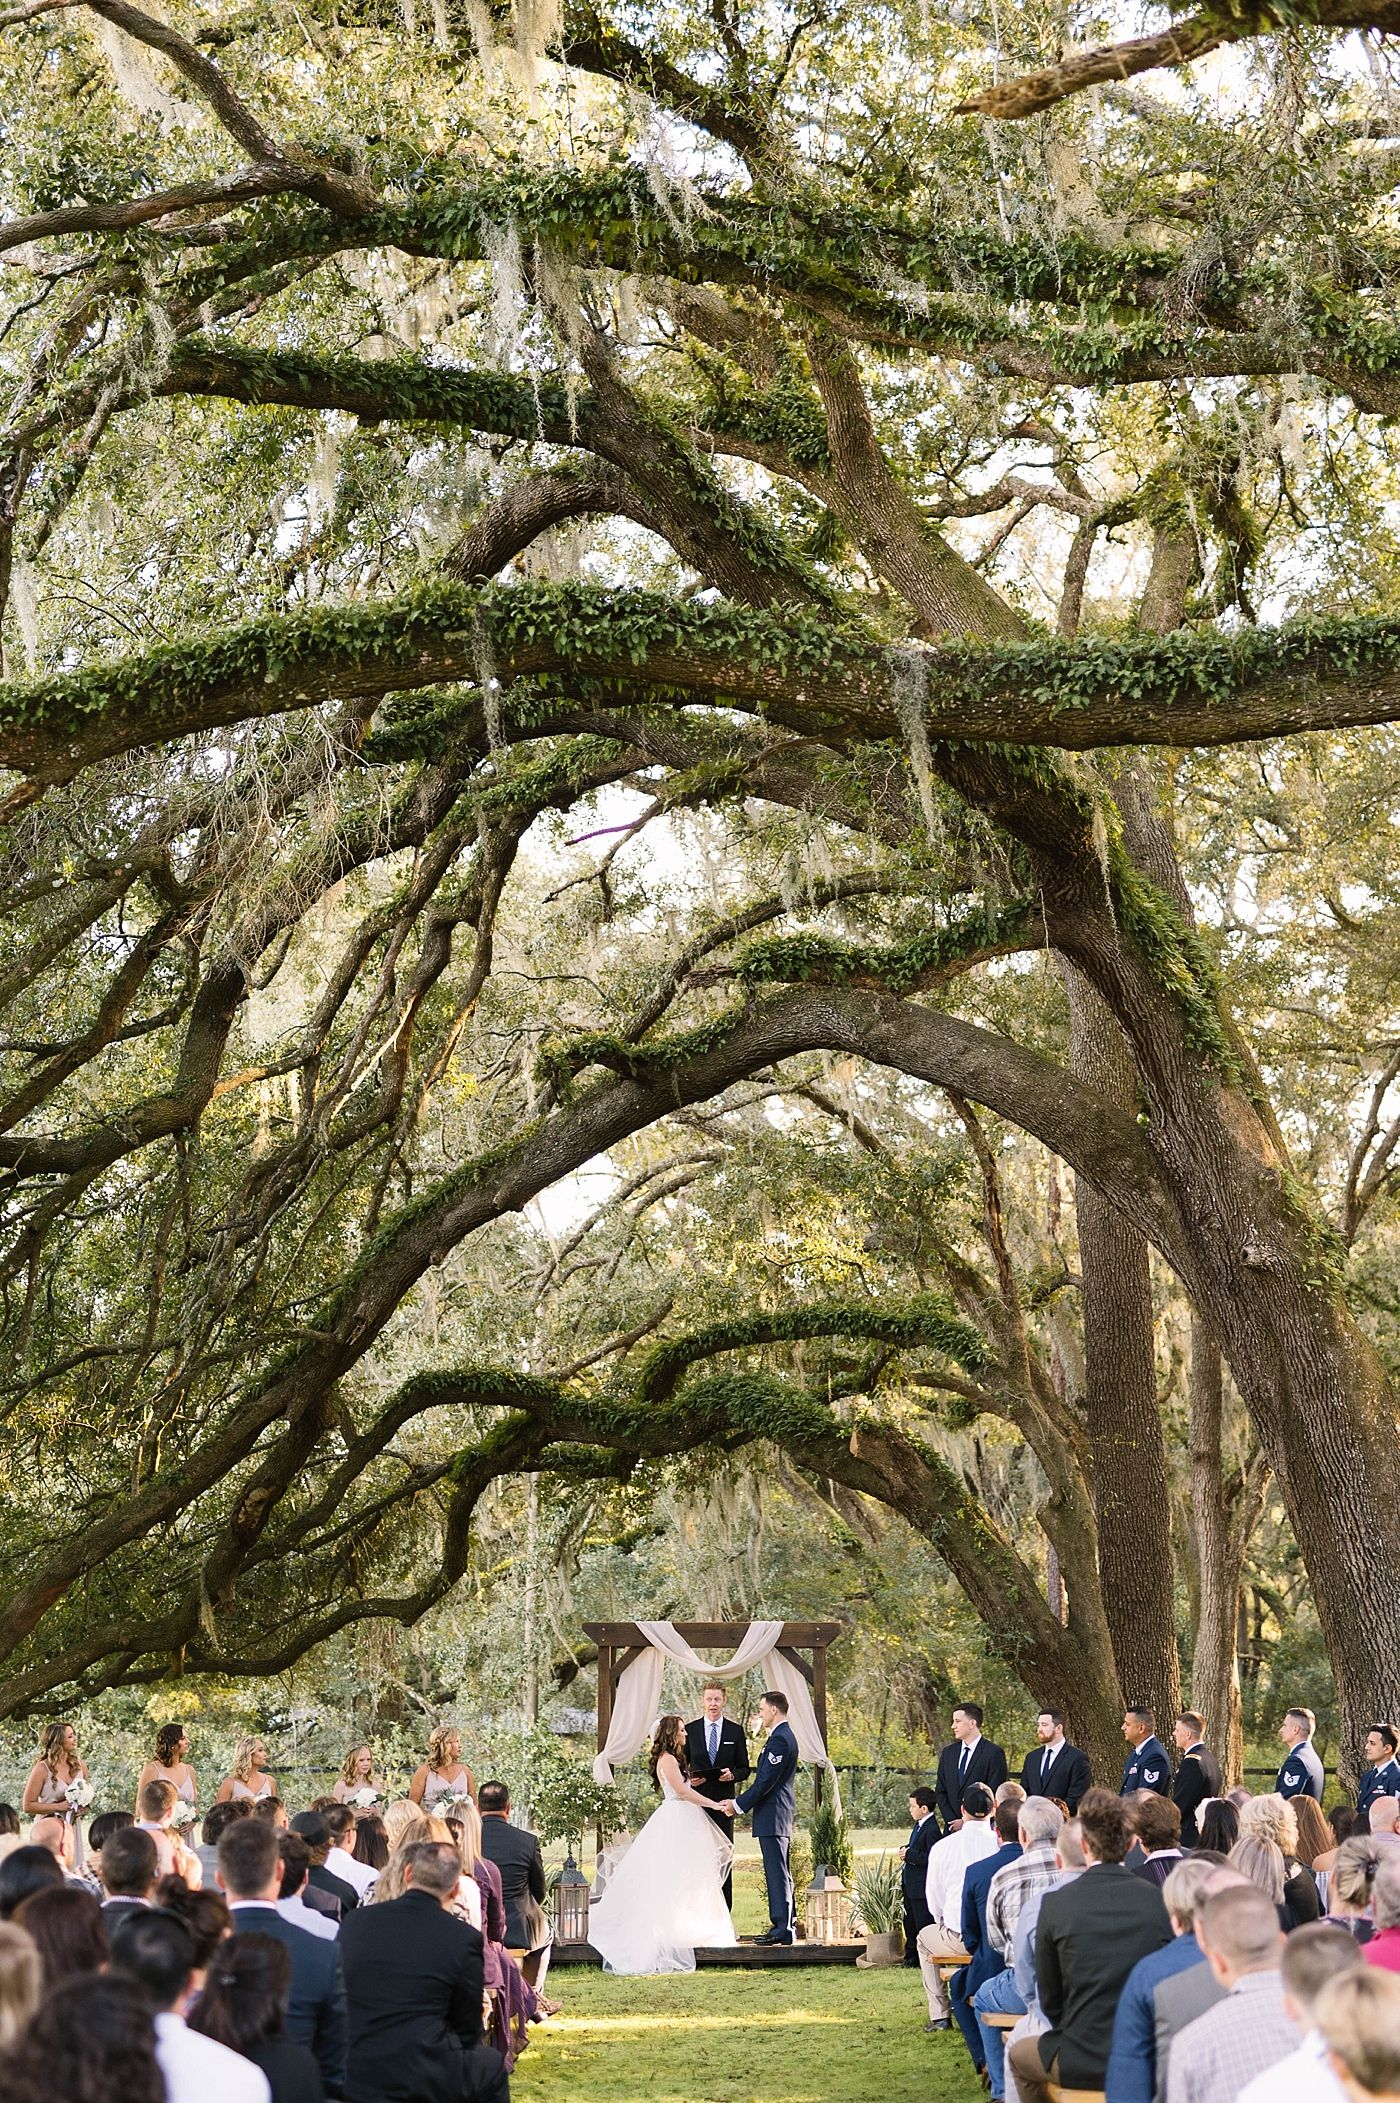 Ocala Fl Wedding Outdoor Wedding Venues Florida Wedding Oak Tree Wedding